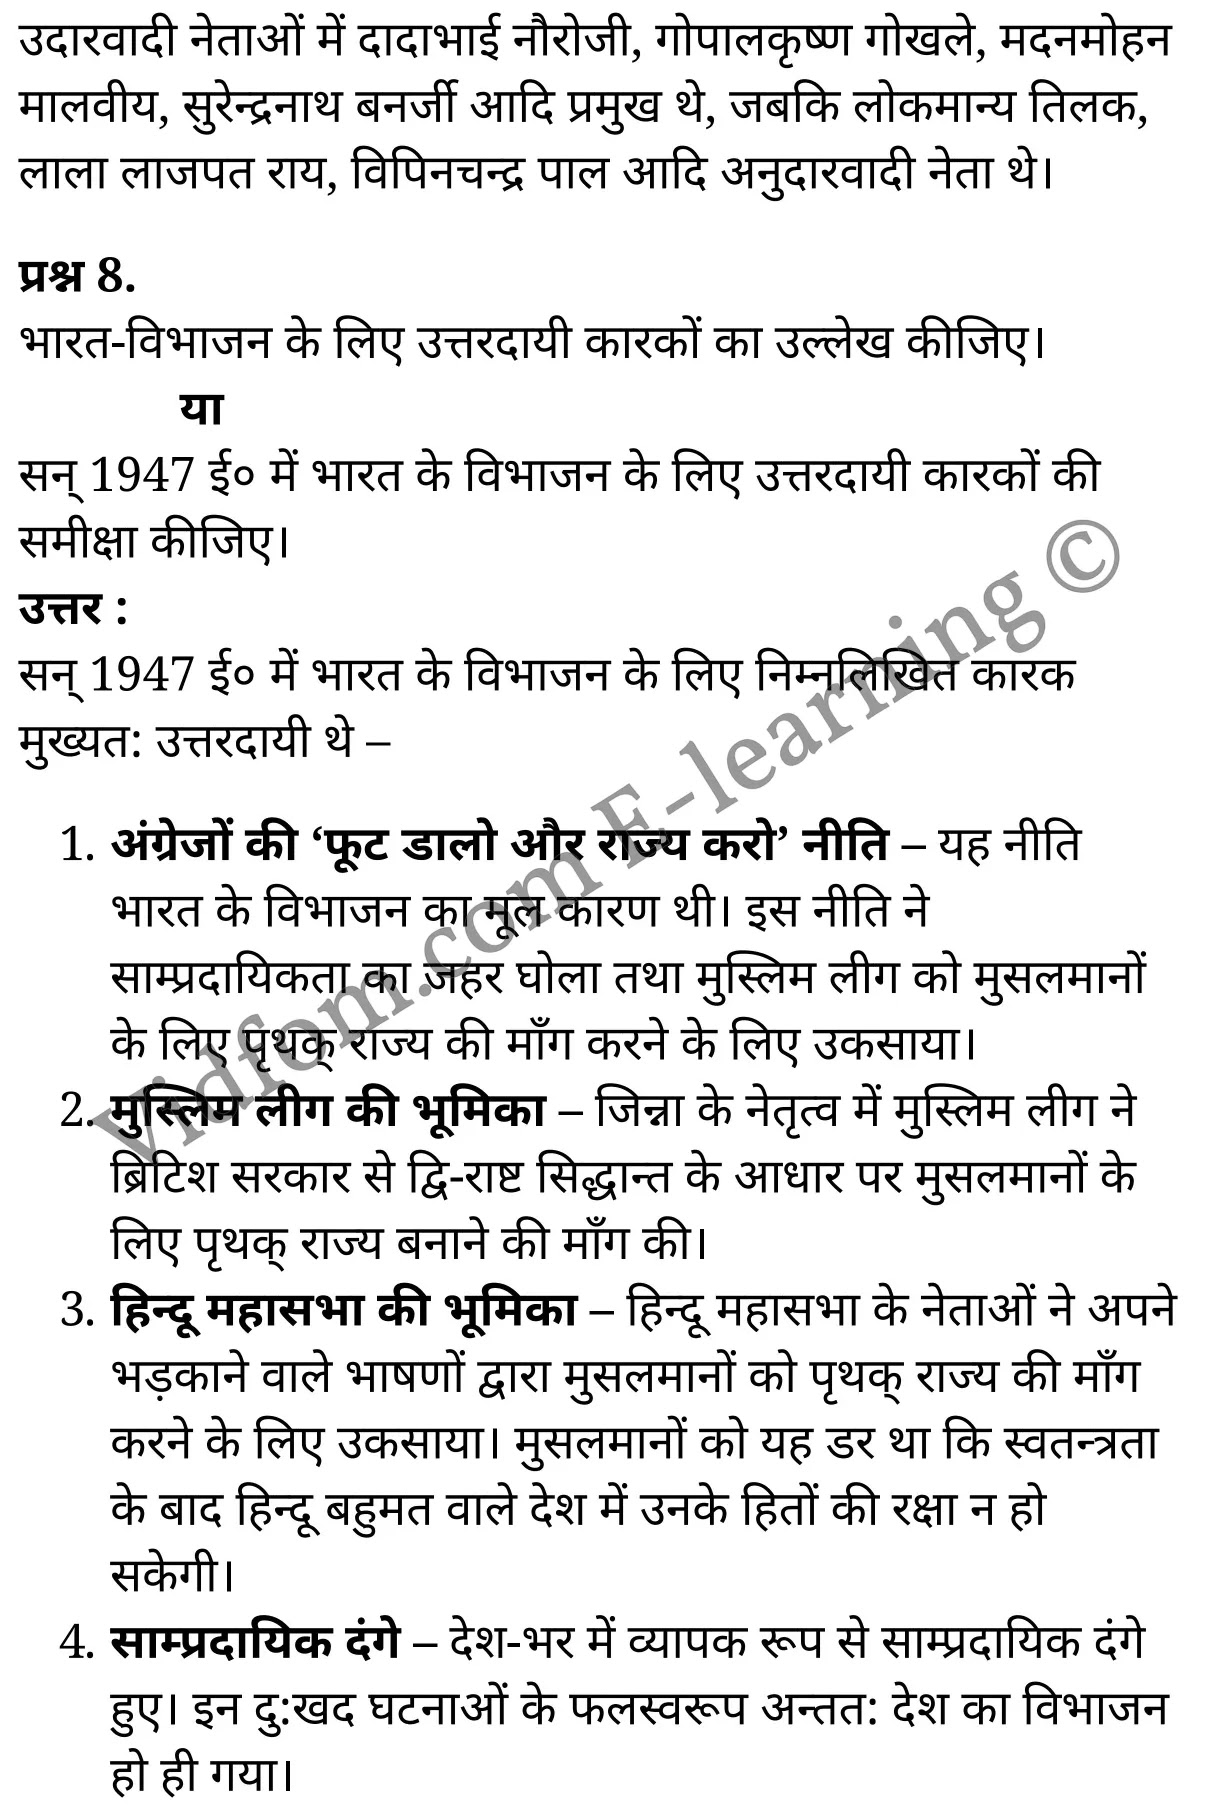 class 10 social science chapter 12 section 1 47